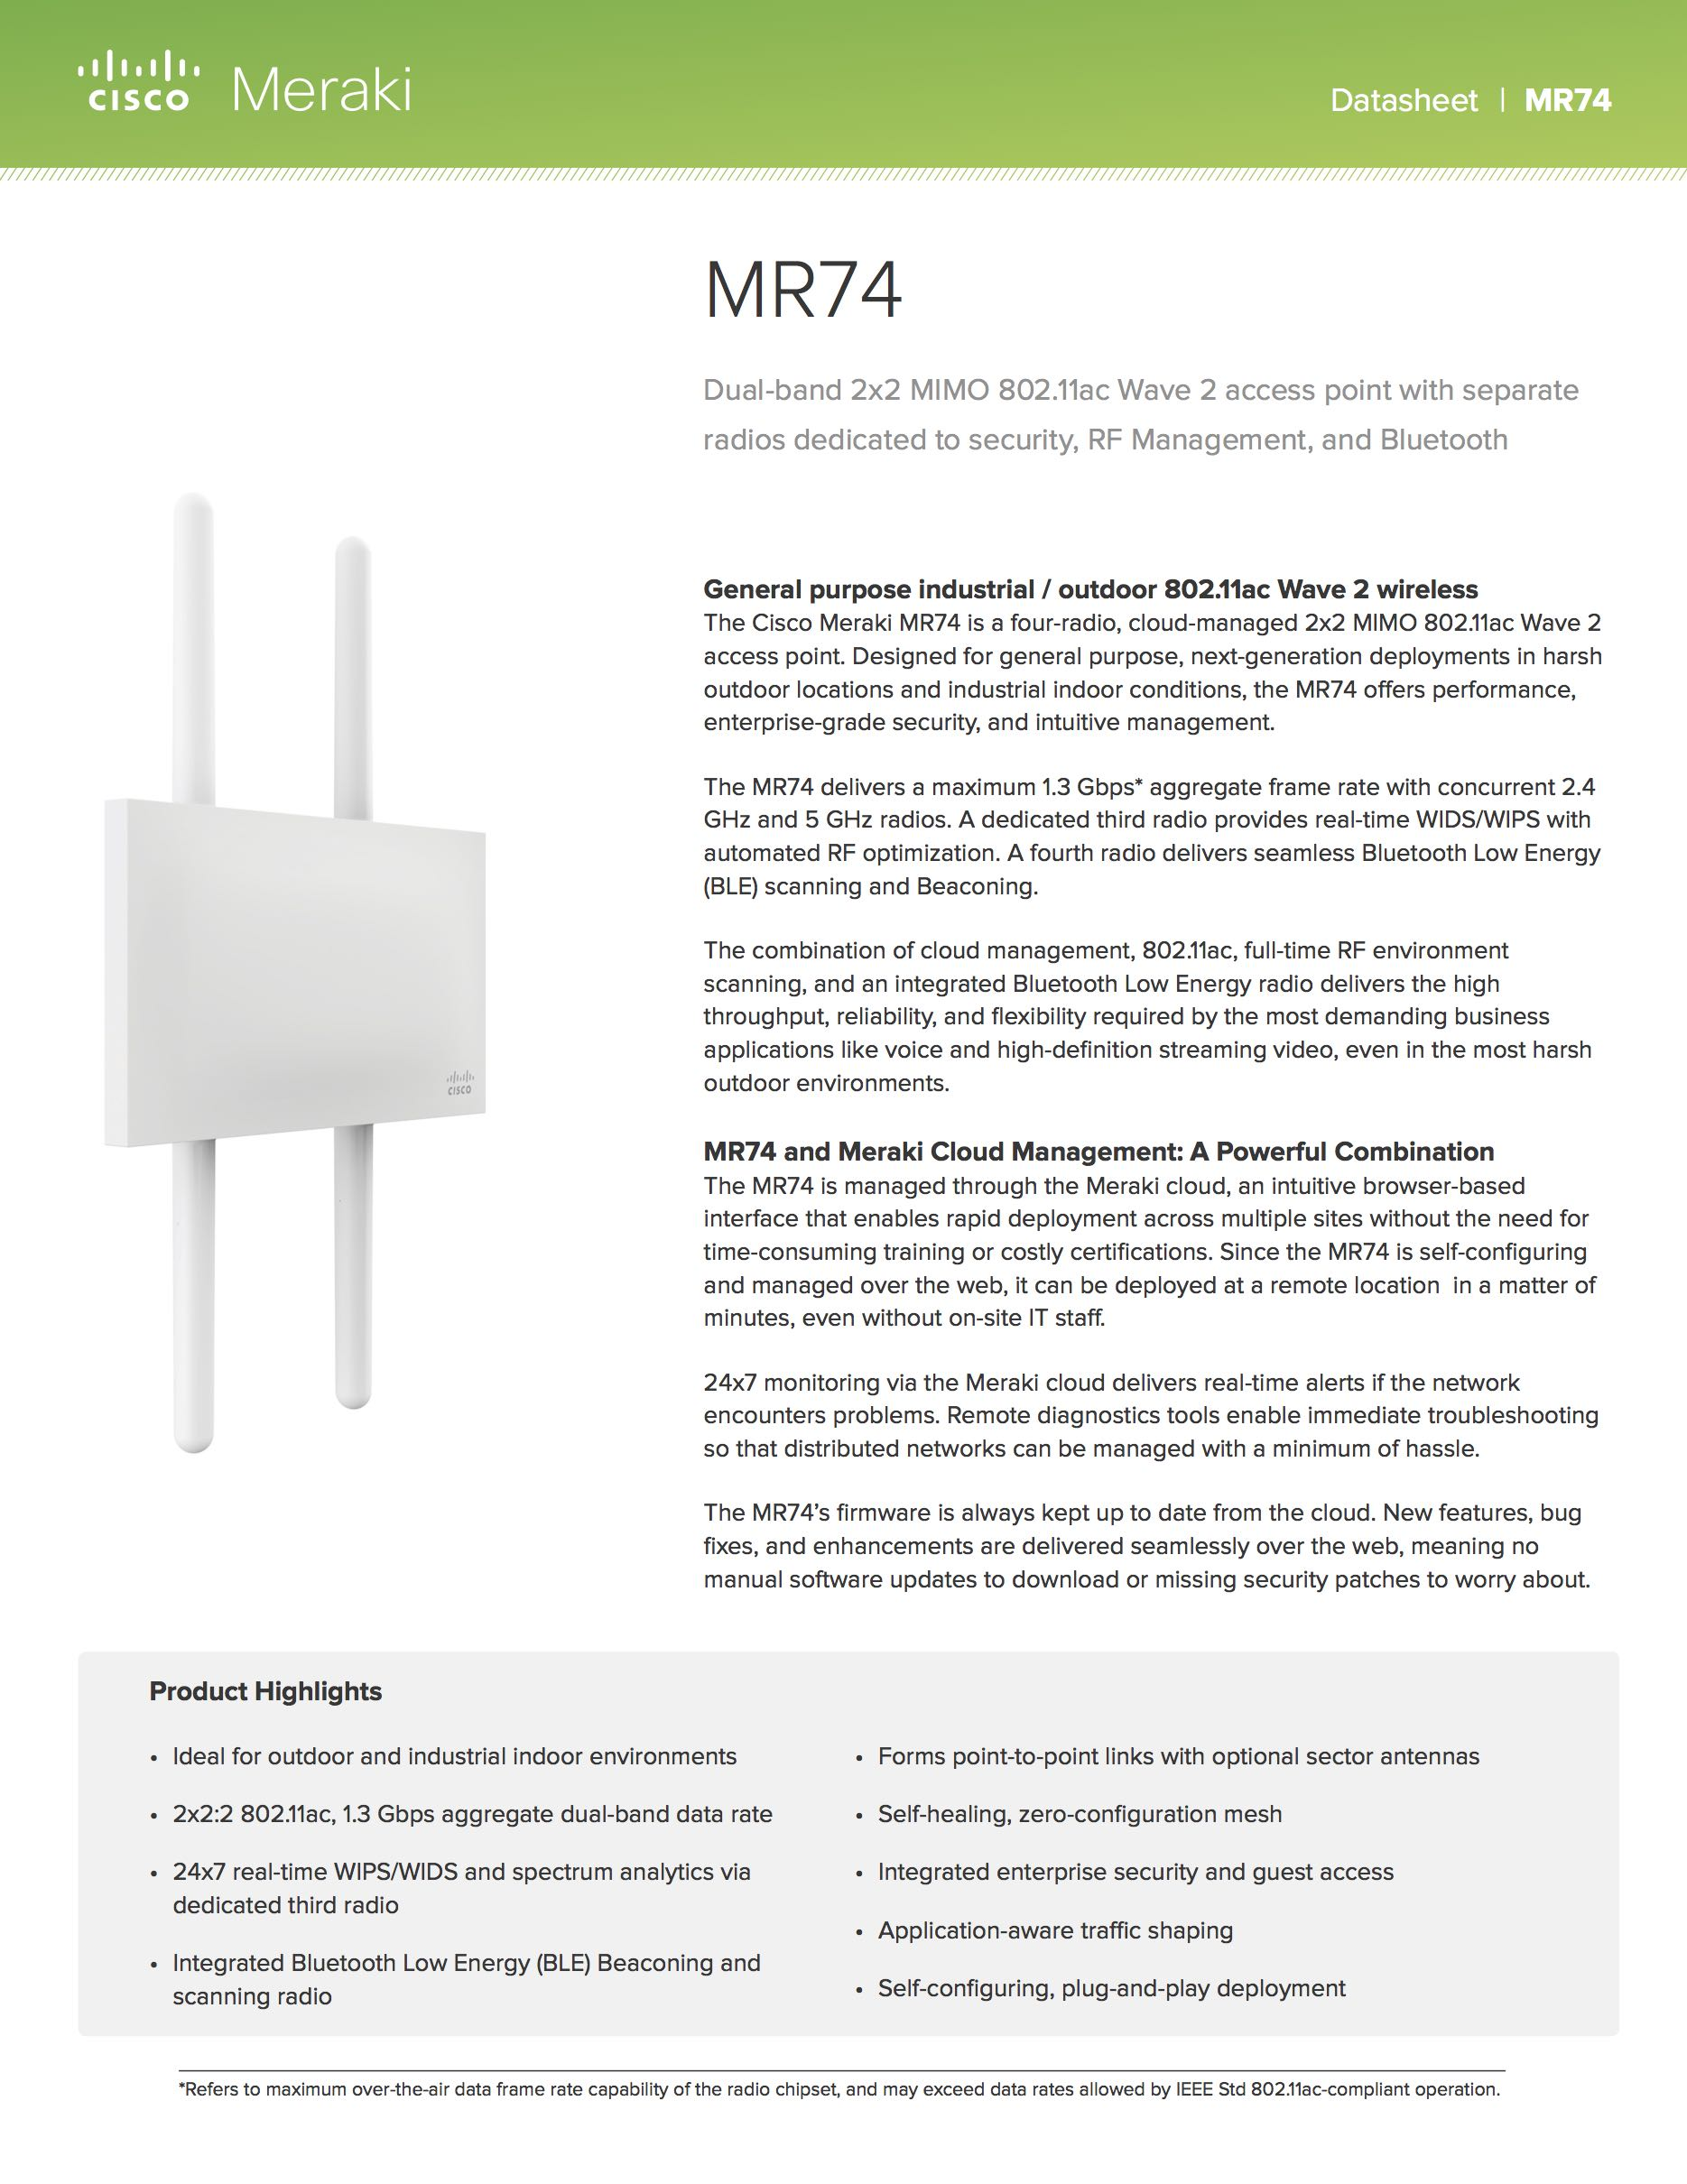 MR74 Datasheet